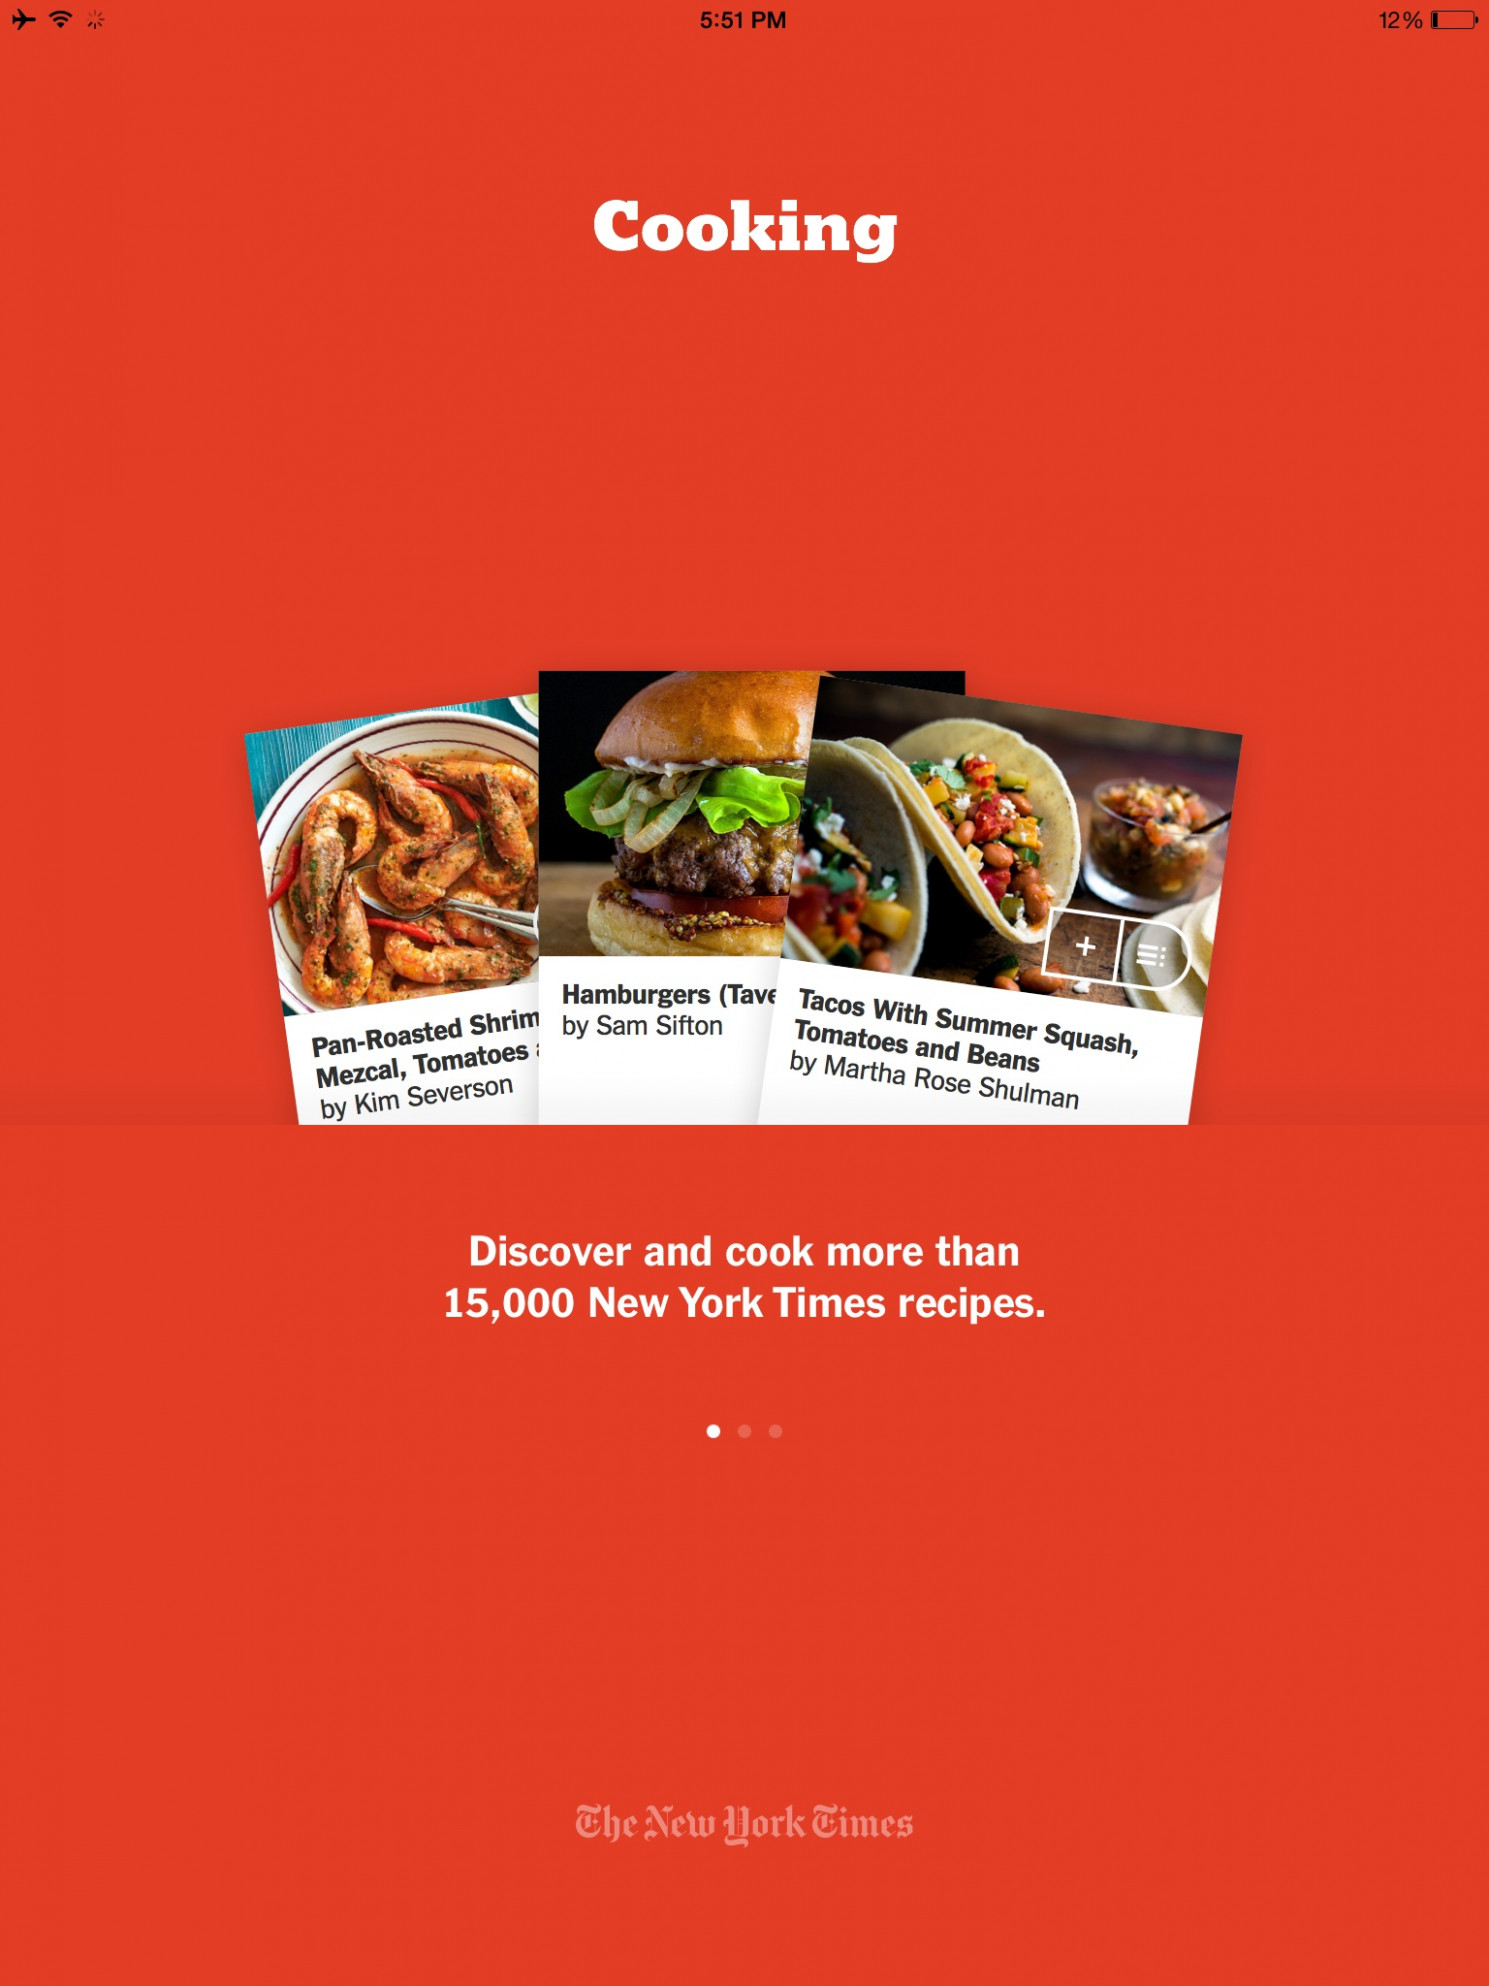 NYT Cooking - Recipes from The New York Times Design ..